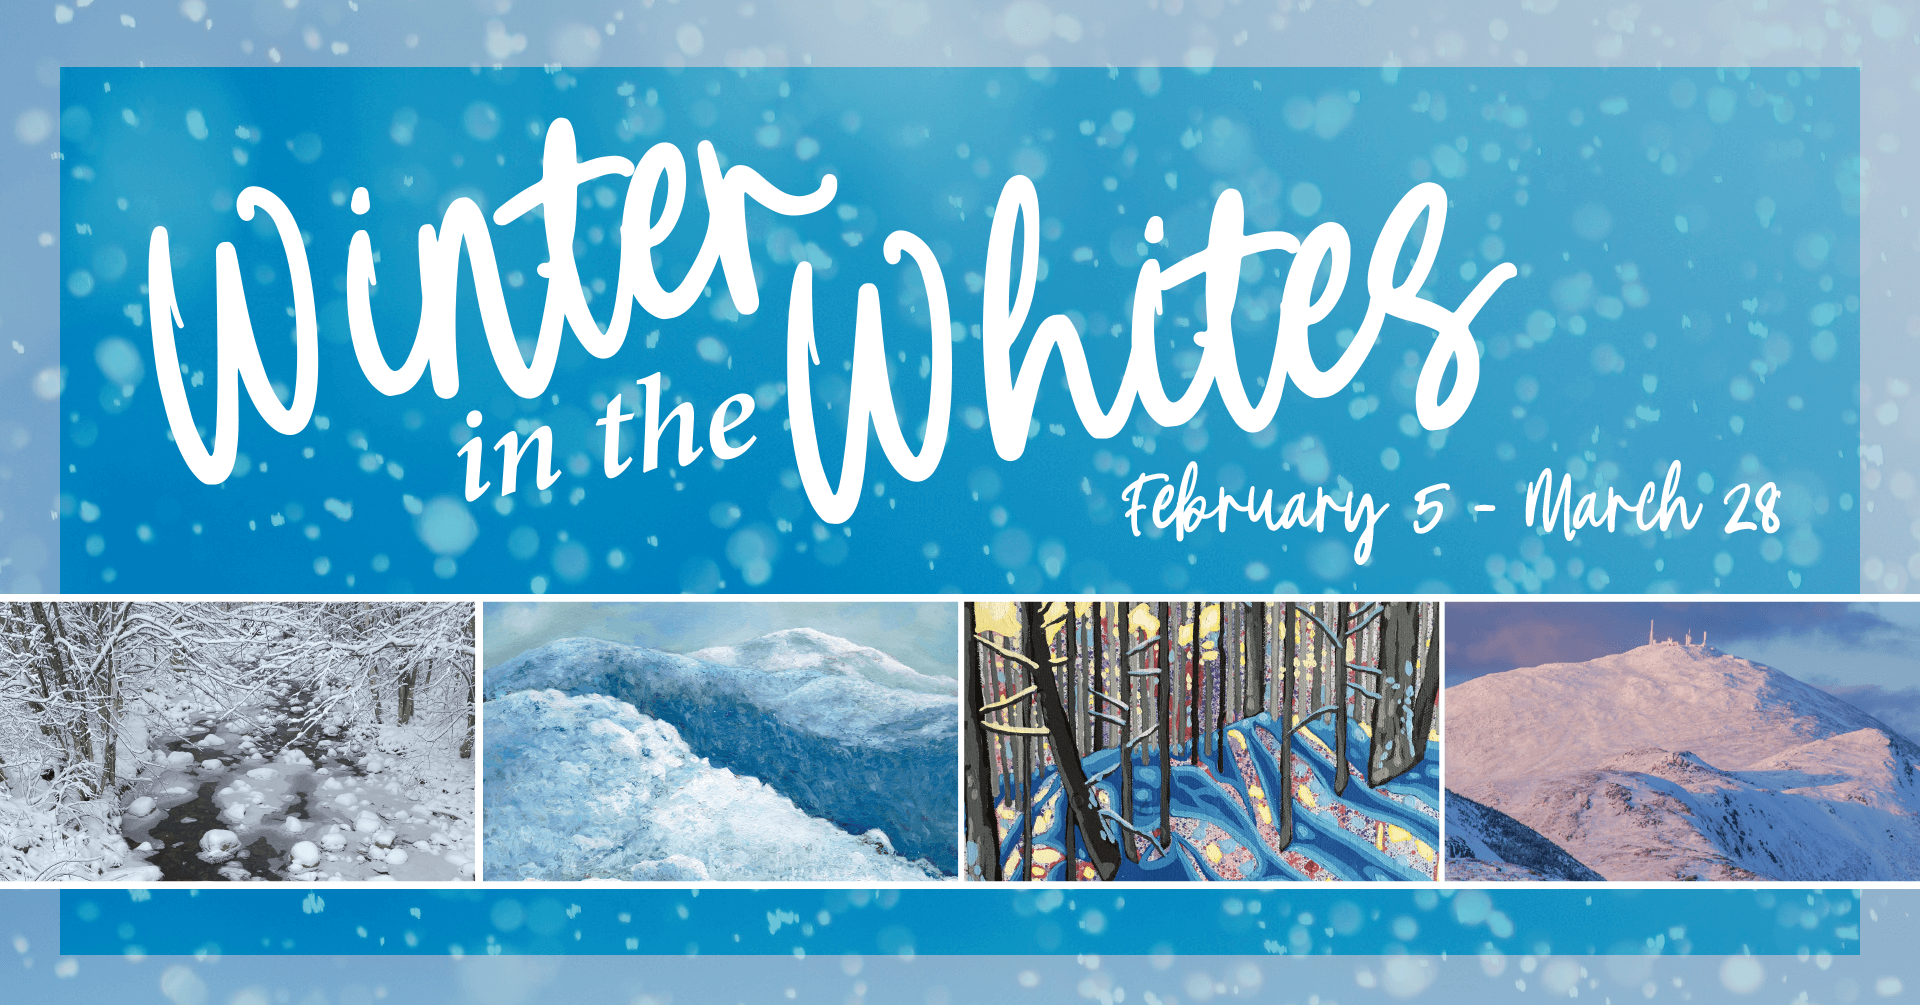 Winter in the Whites Gallery Show